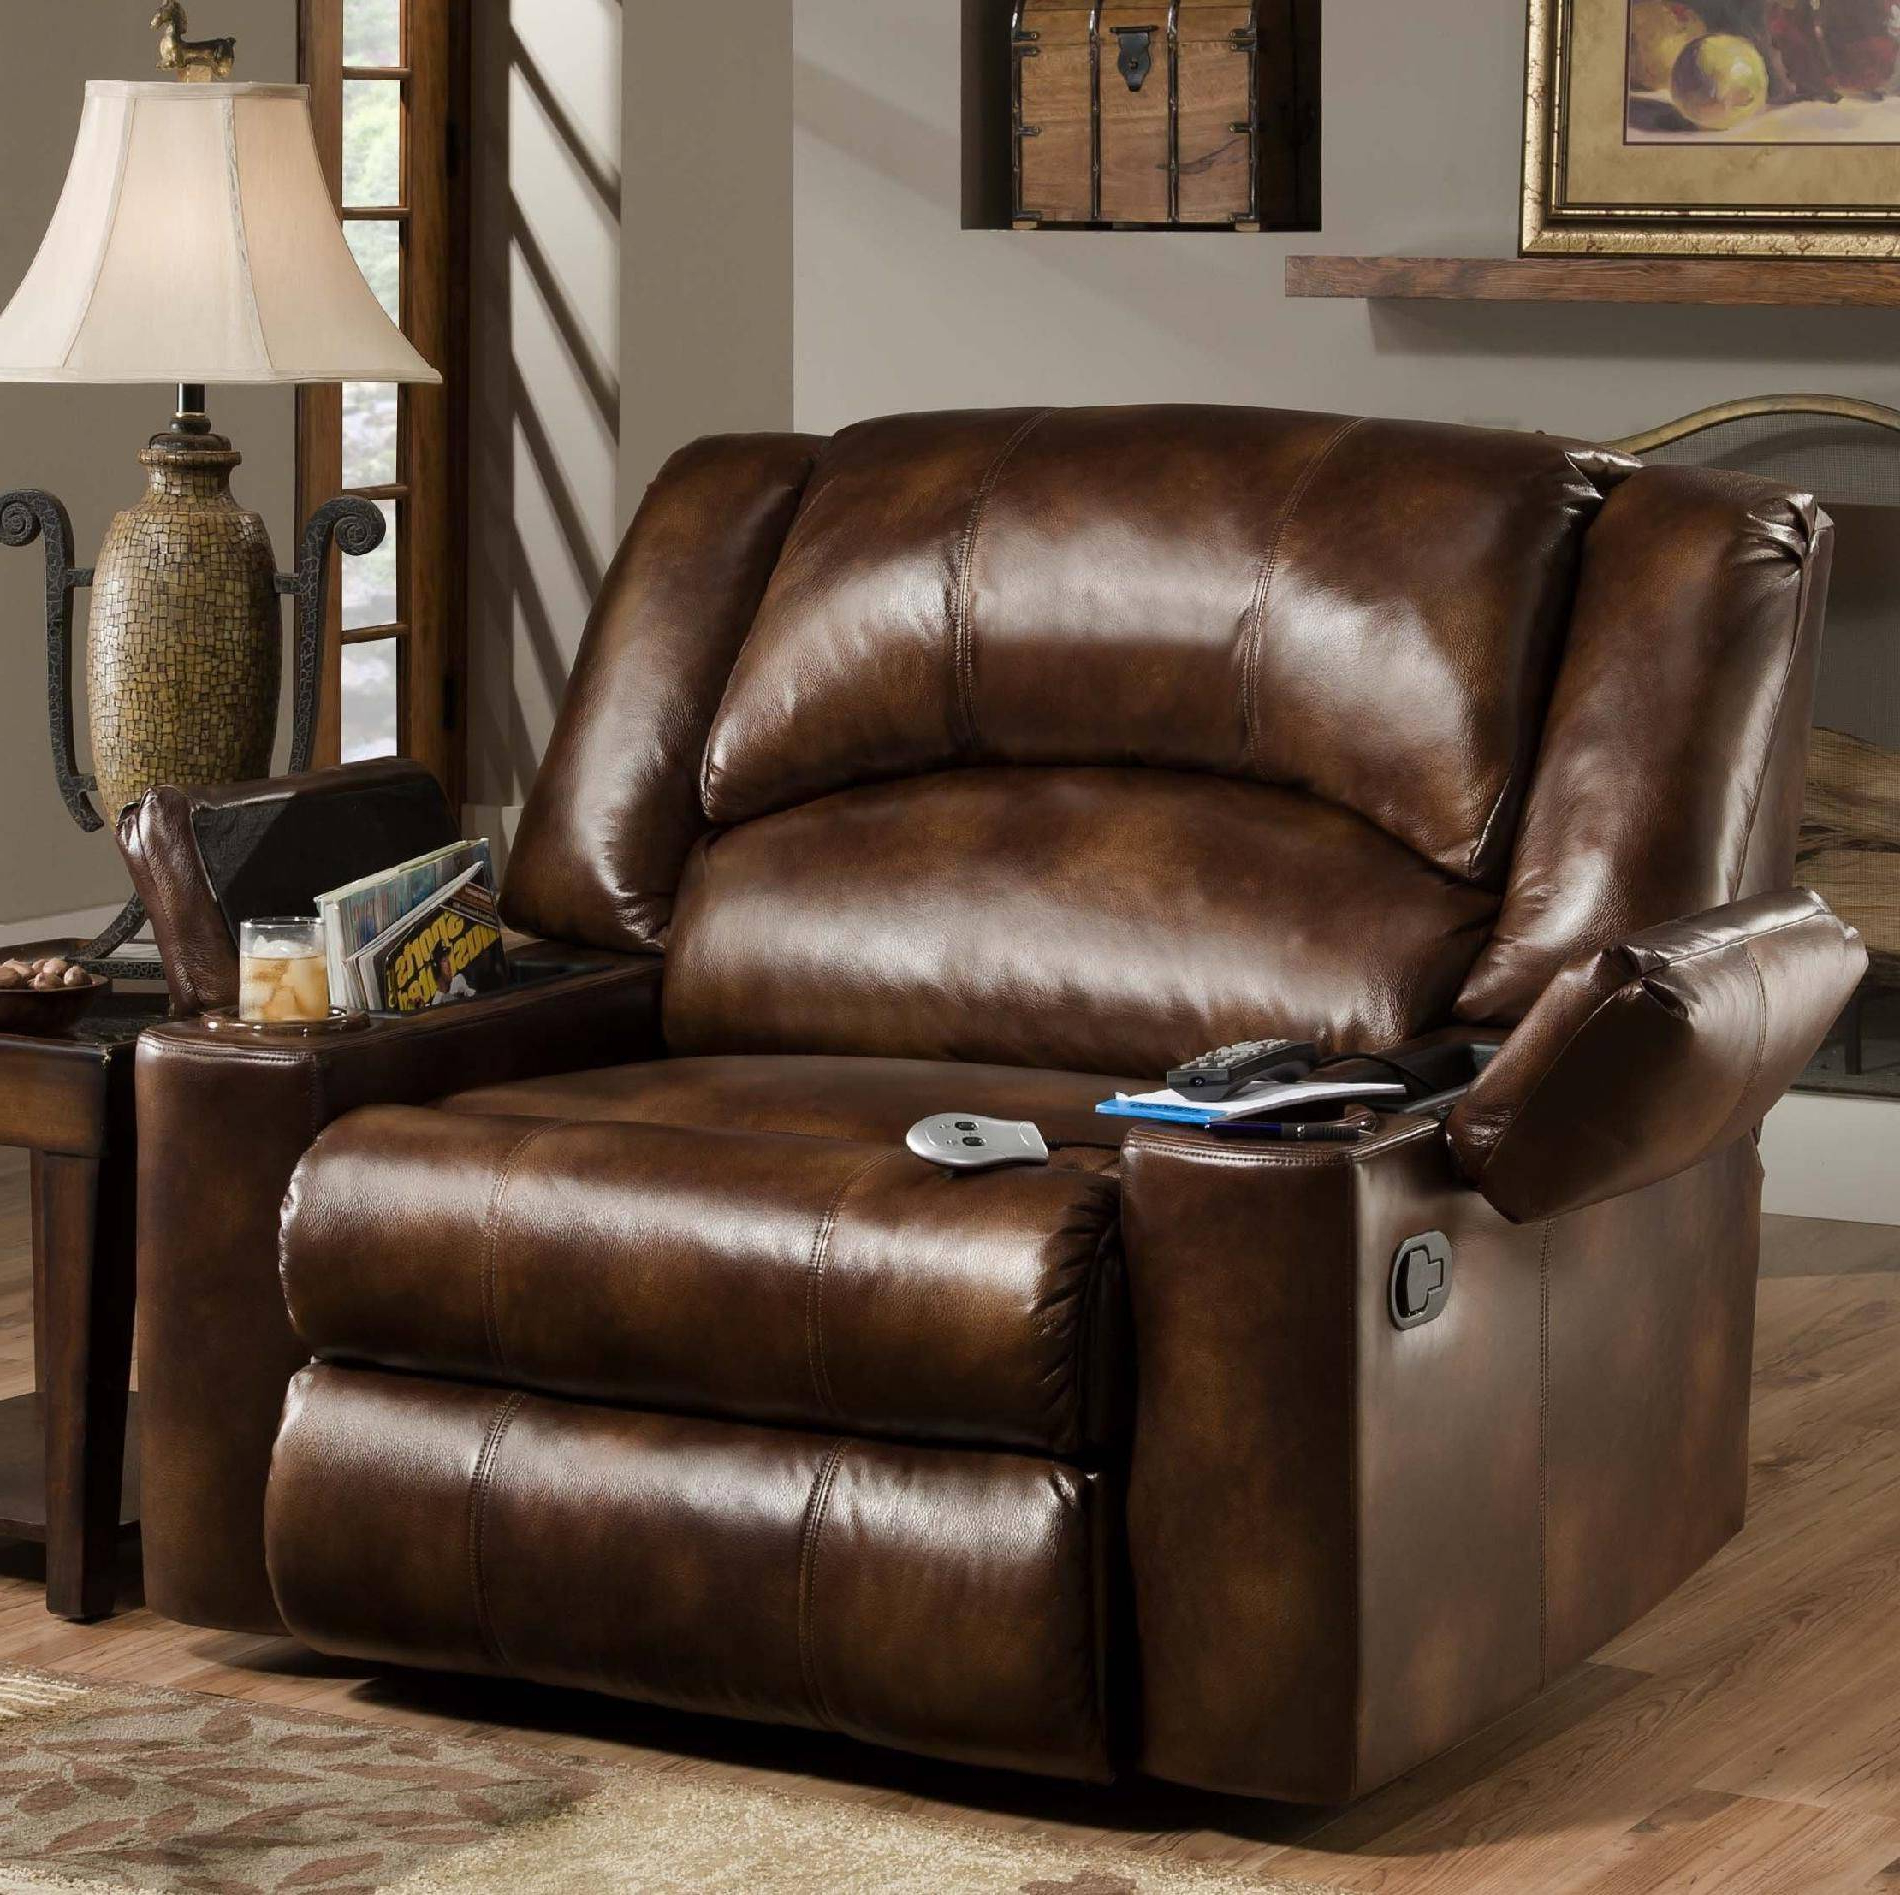 Extra Wide Recliner Lounge Chairs Pertaining To Current Good Looking Extra Wide Leather Recliner Home Improvement (View 8 of 25)